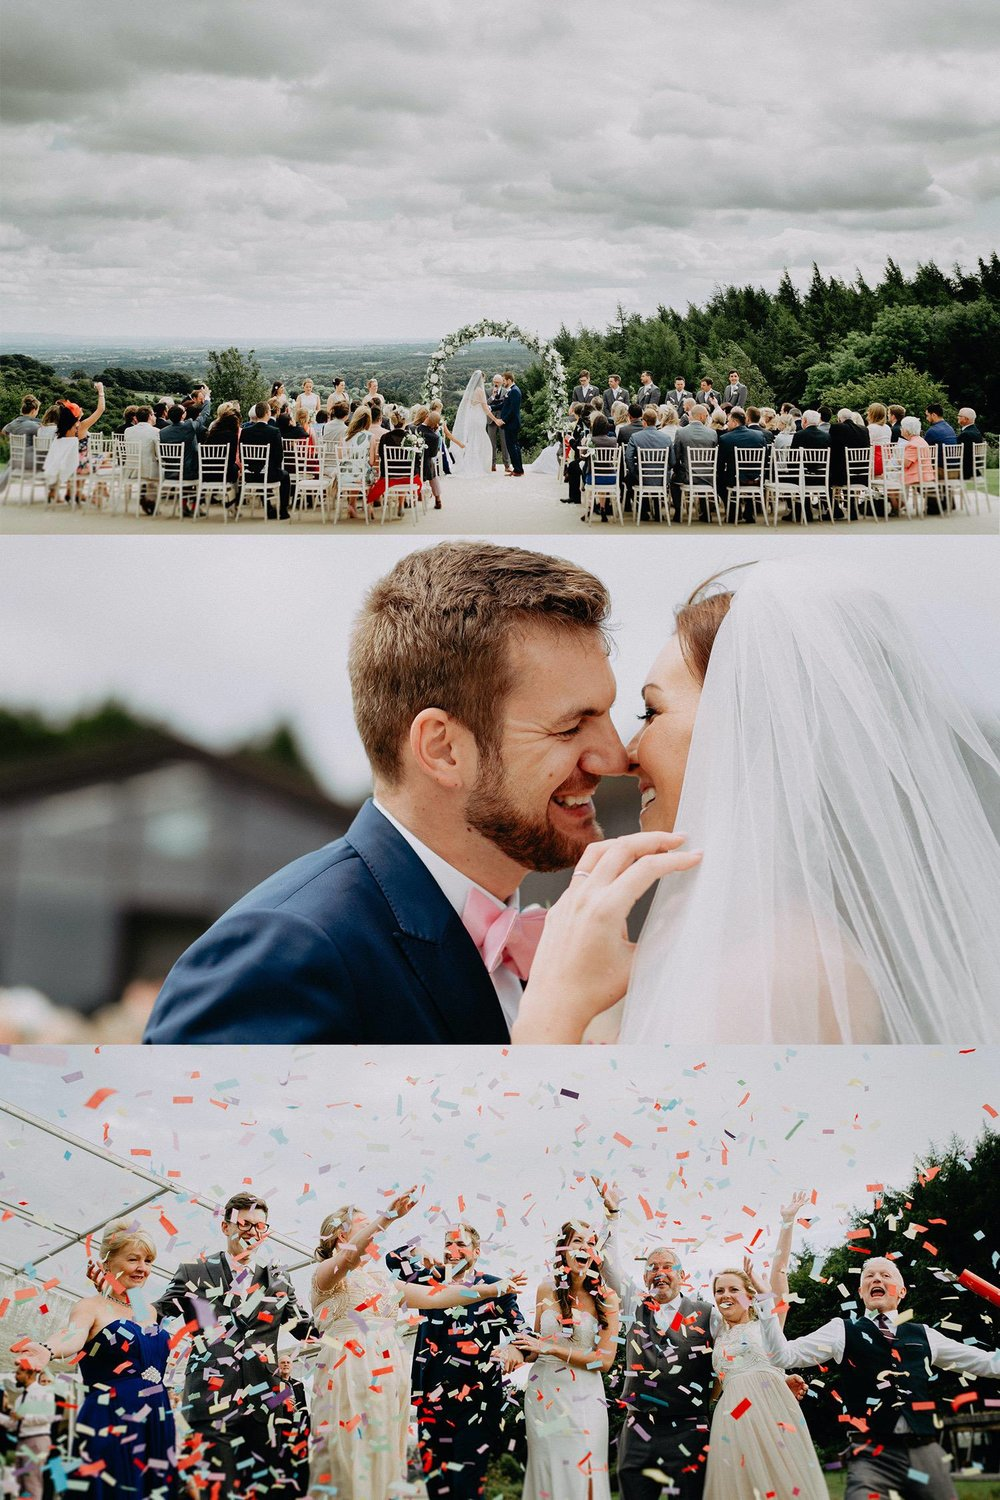 Wedding-Photographer-Natural-Retreats-Yorkshire-1.jpg